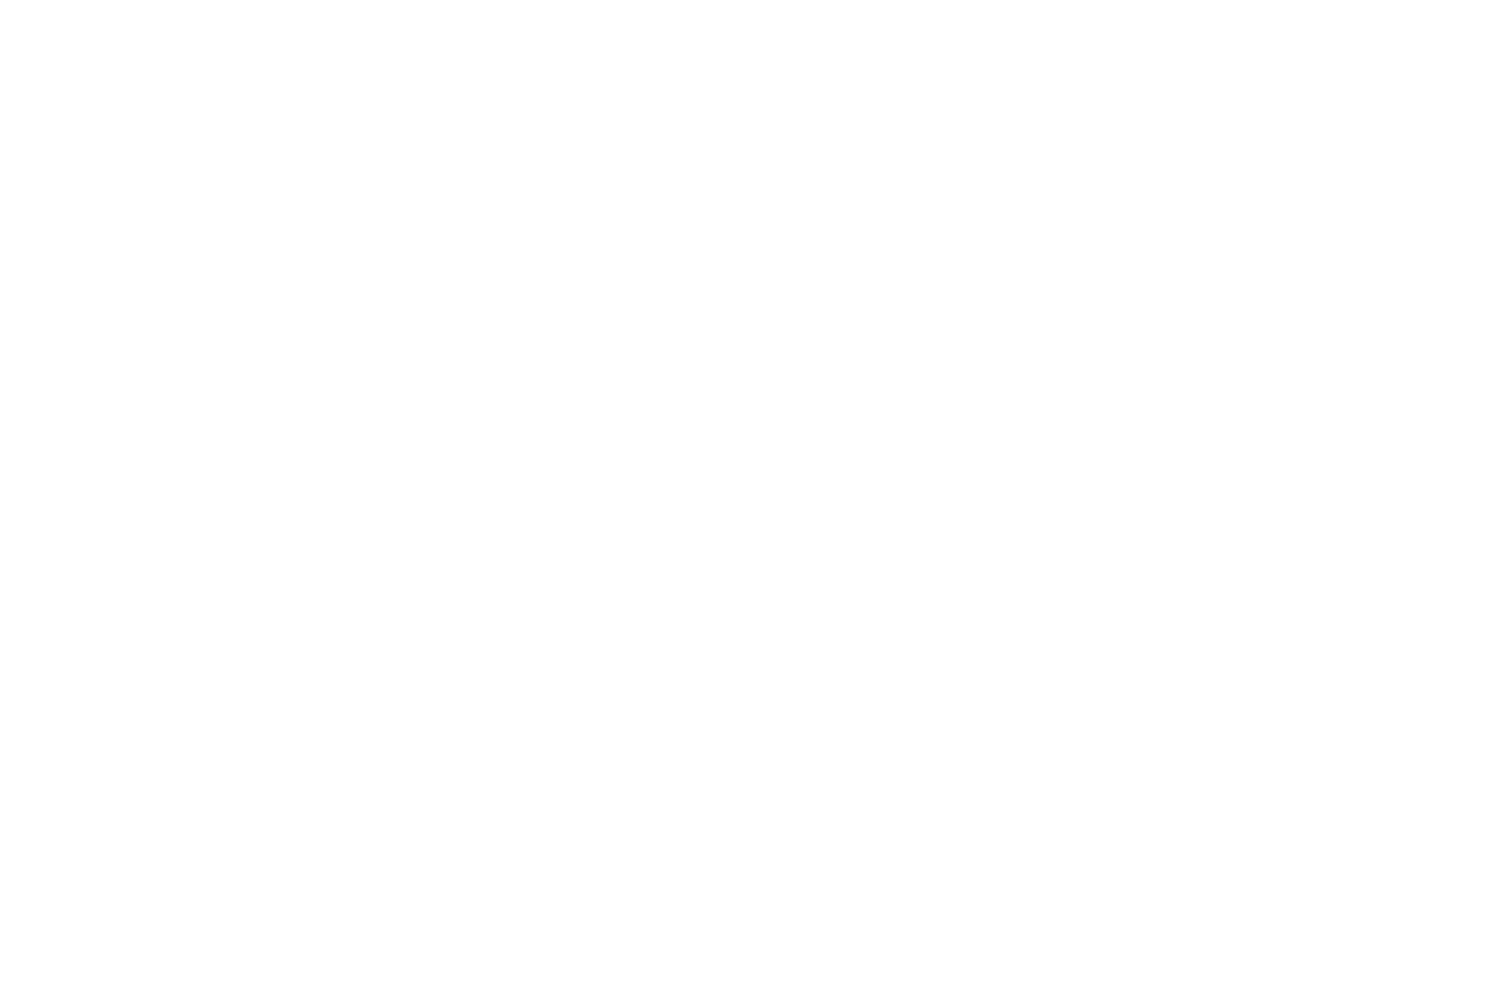 The Dowsing Sound Collective